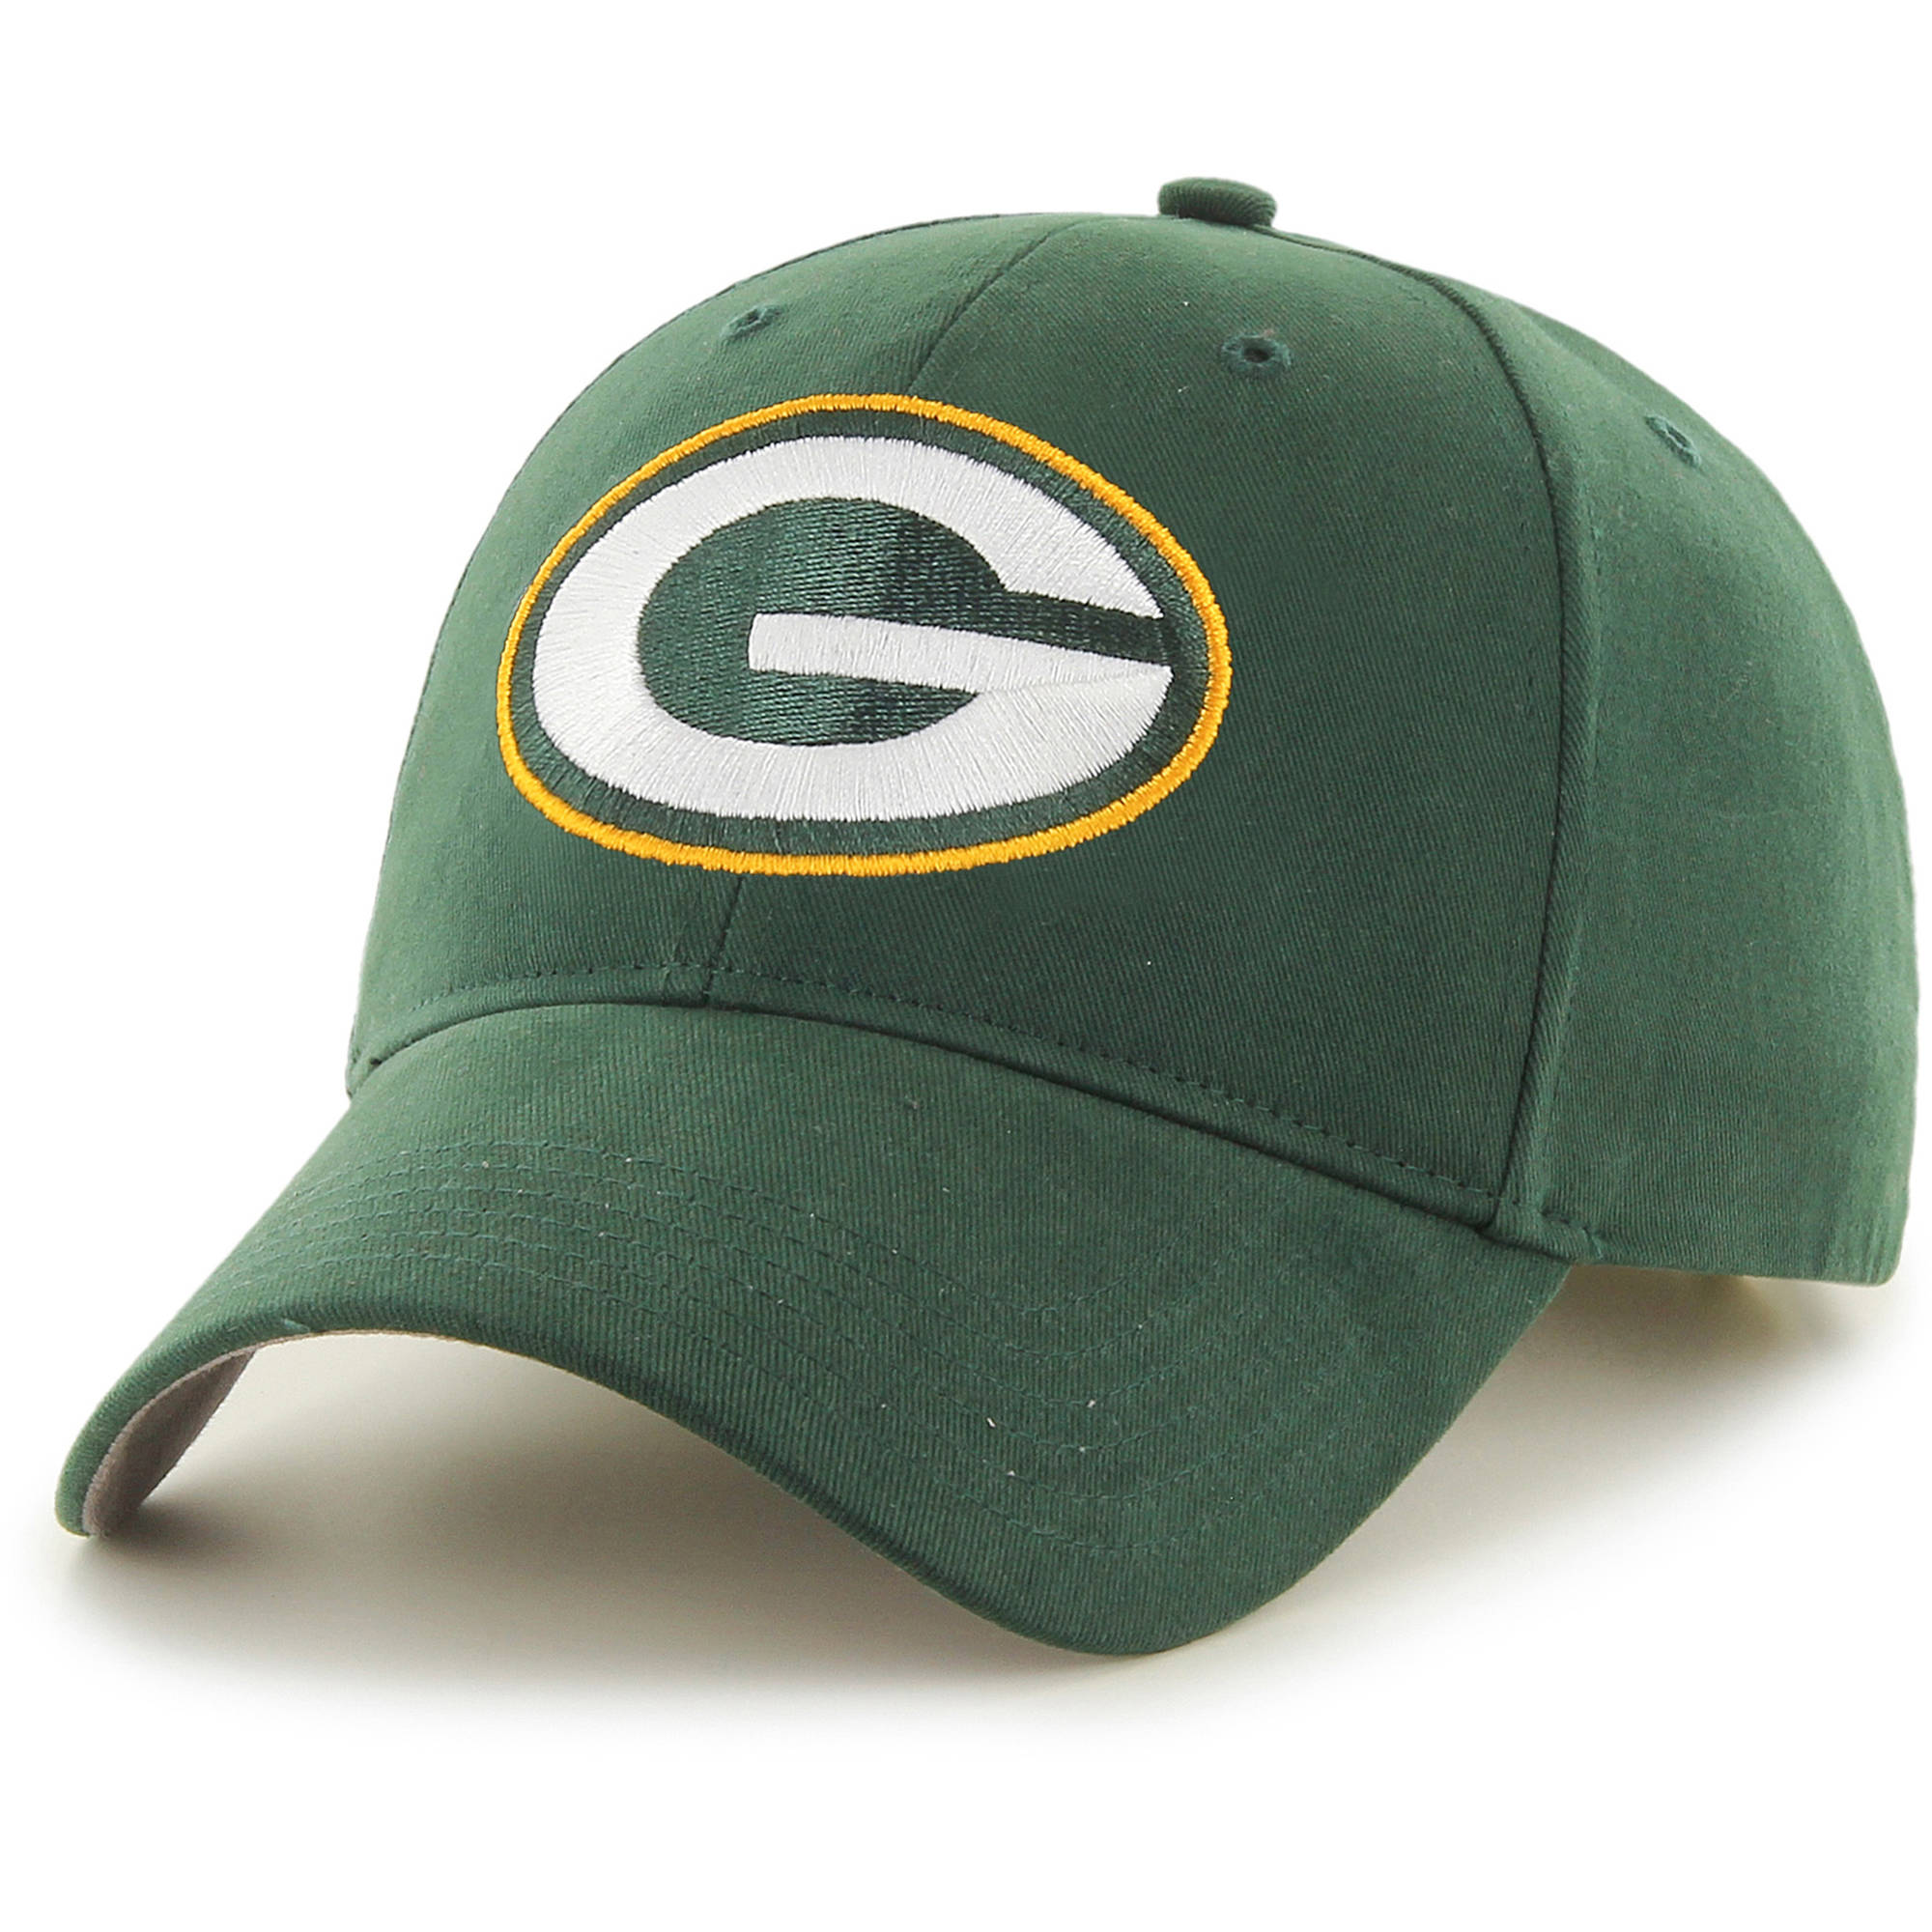 NFL Green Bay Packers  Basic Cap / Hat  - Fan Favorite